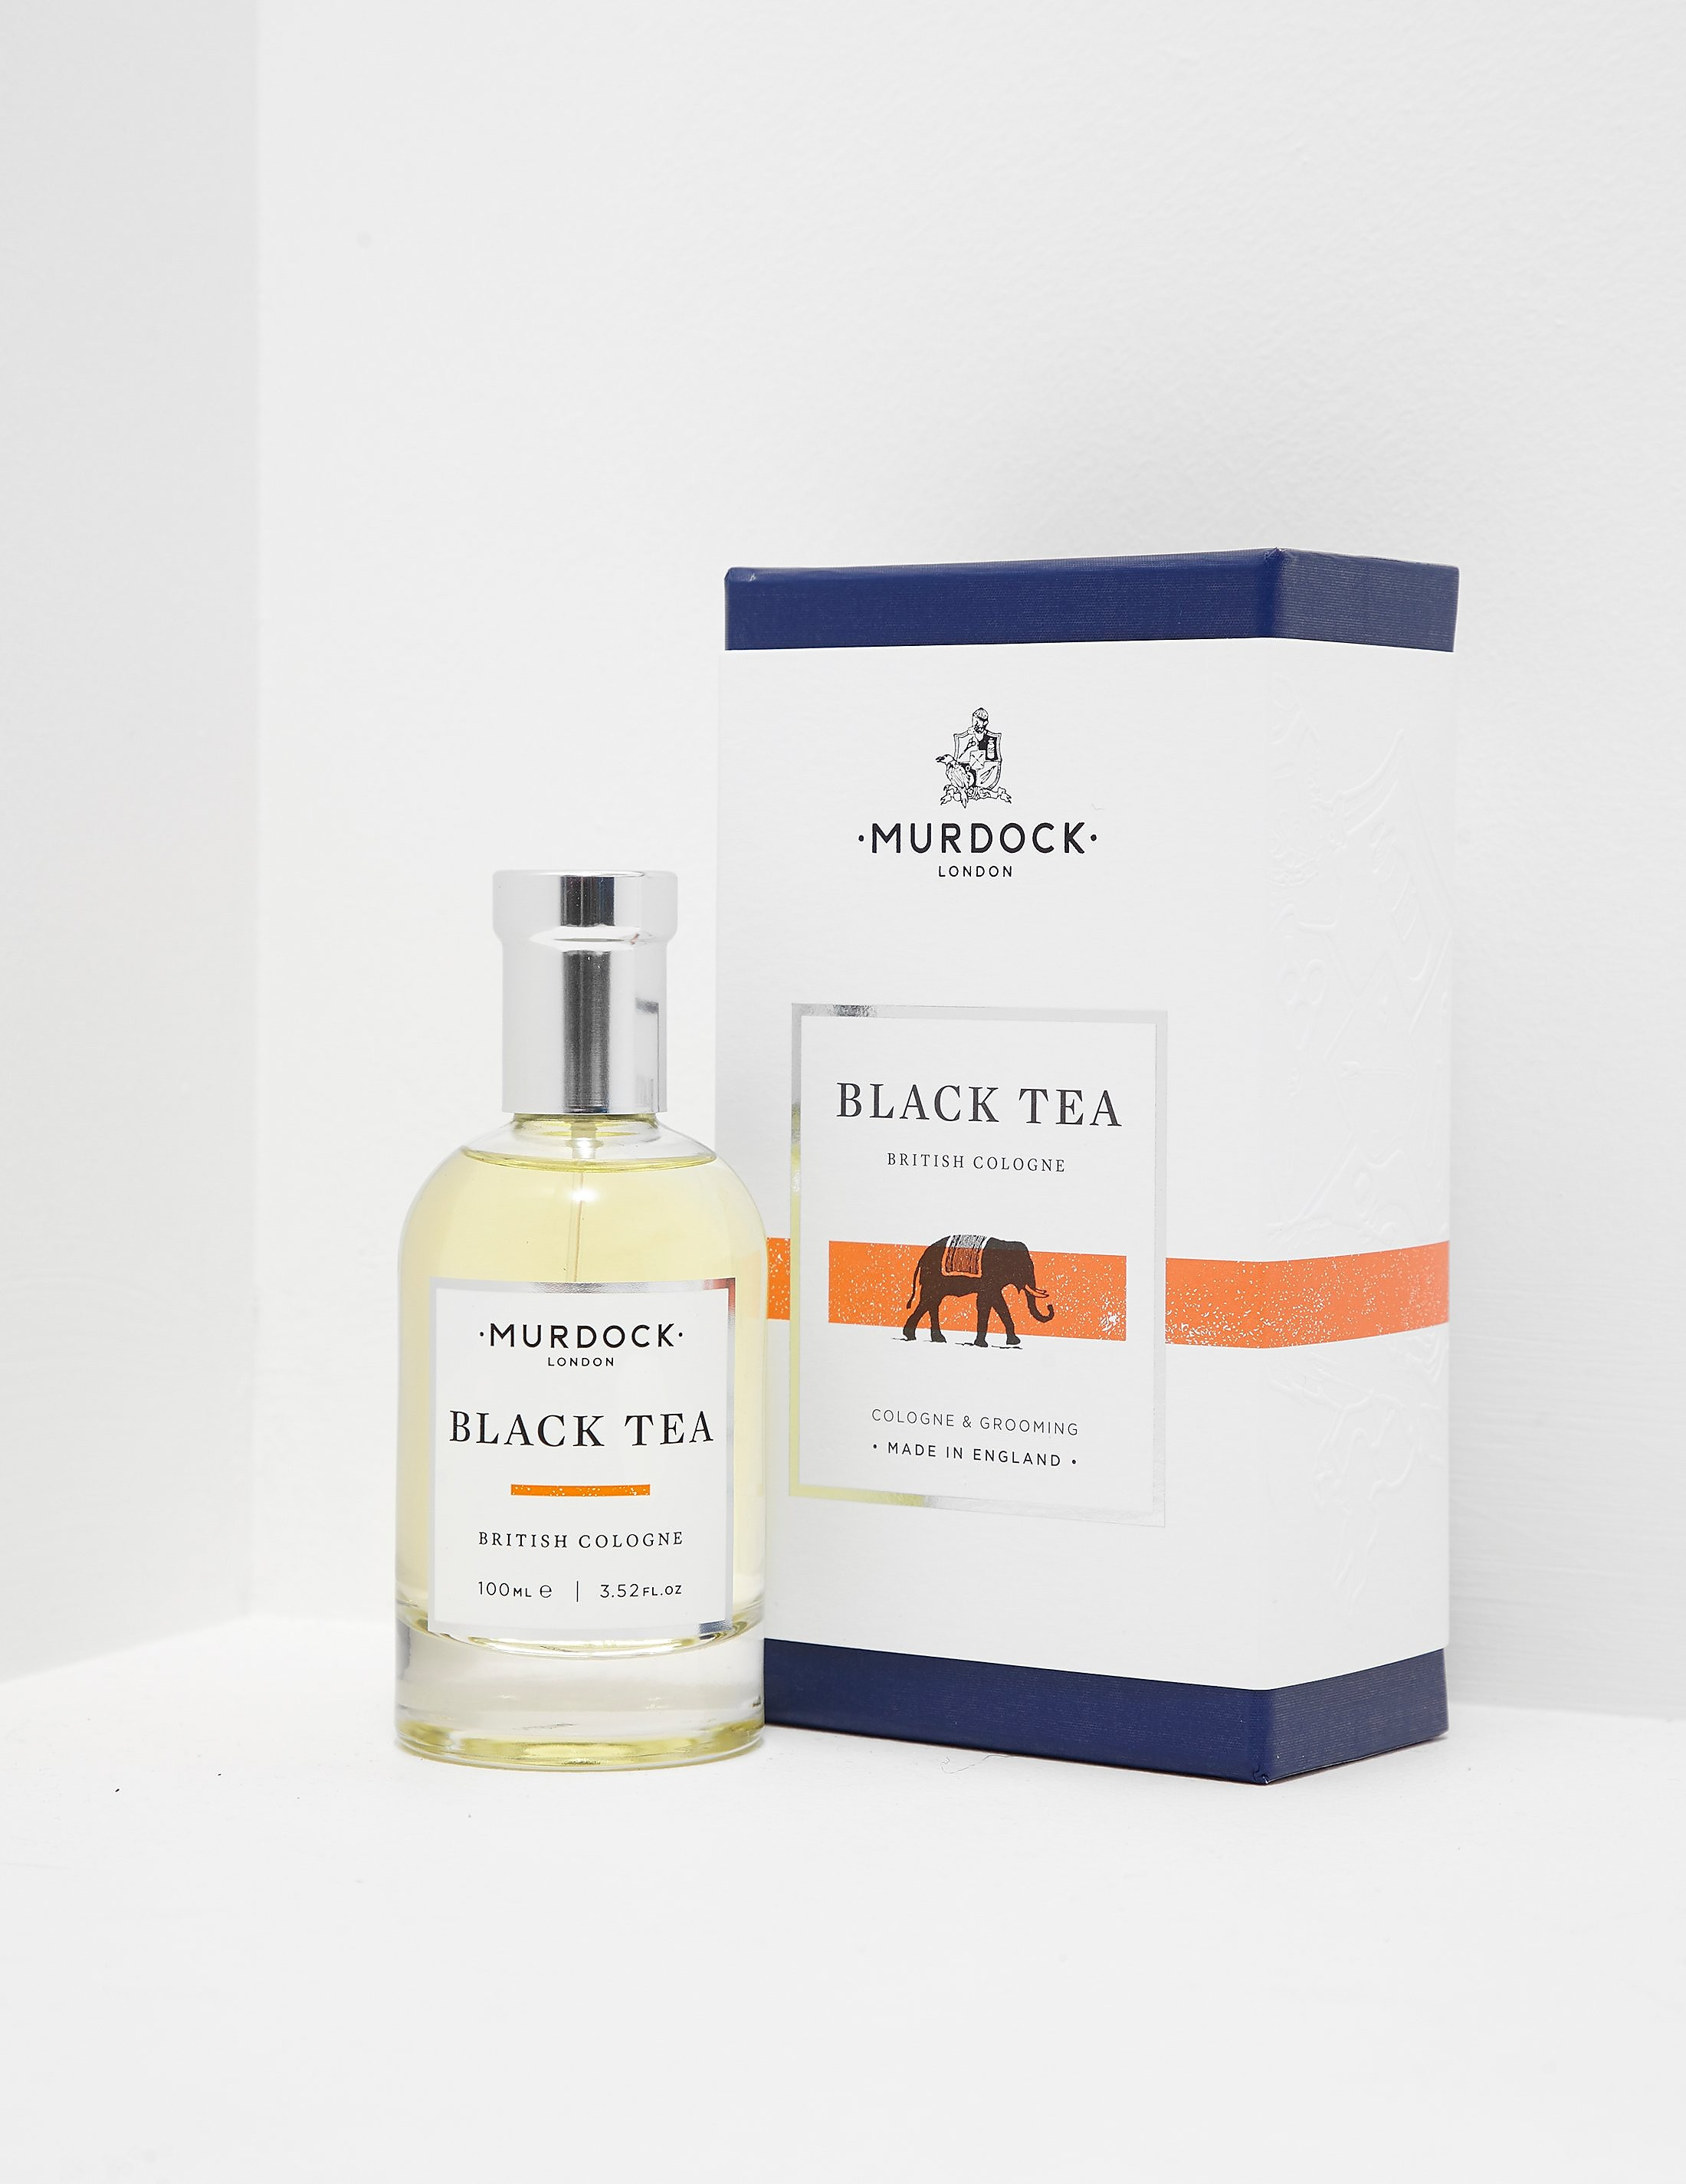 Murdock London Black Tea Fragrance